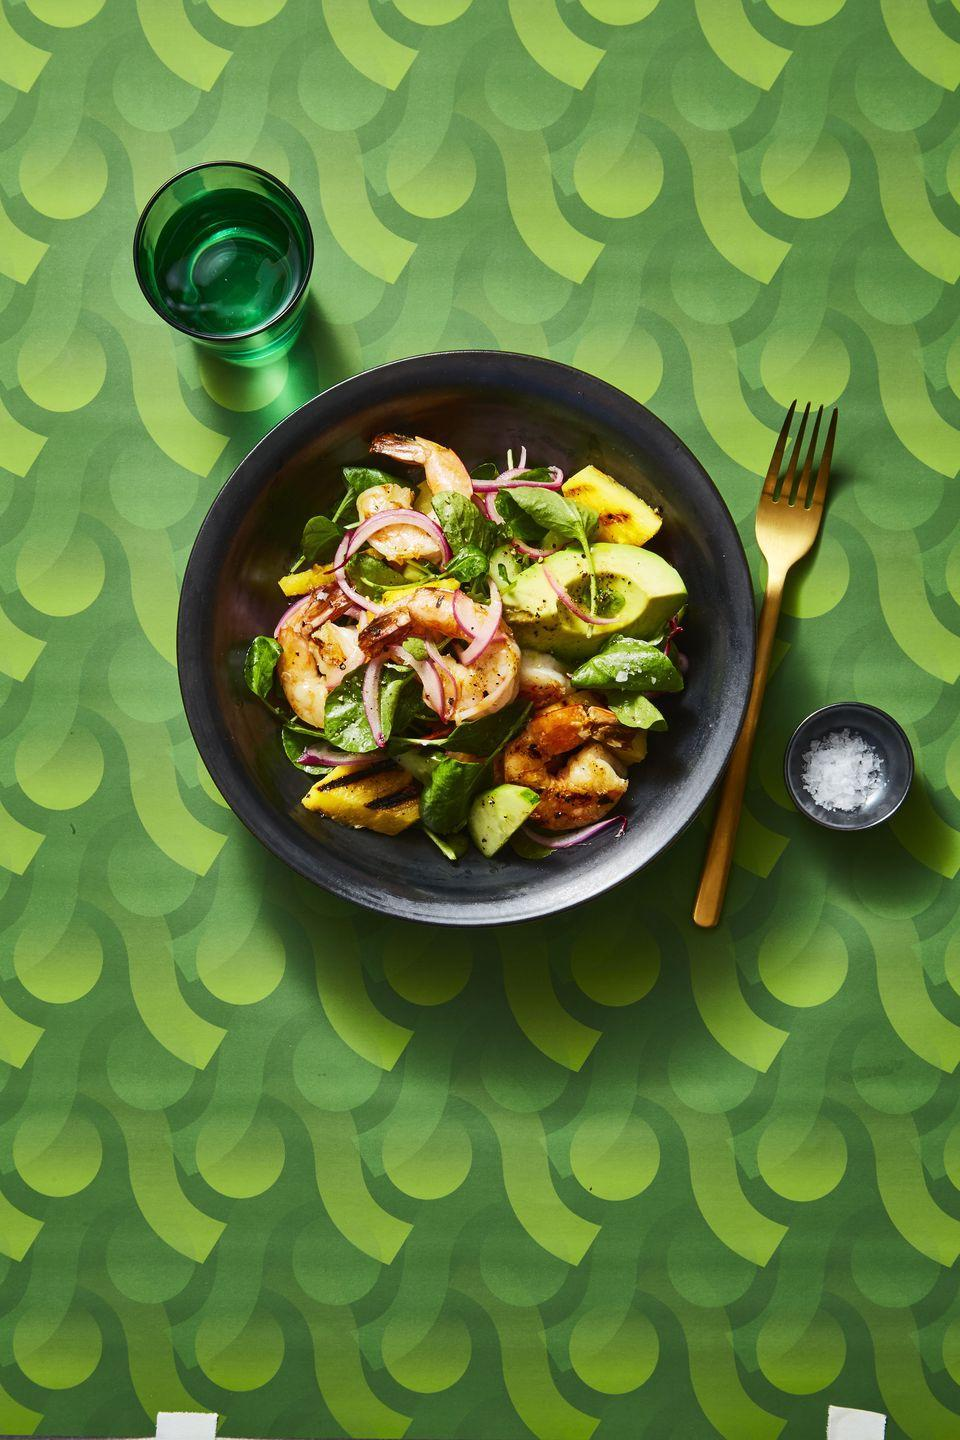 """<p>Perfectly grilled shrimp can be fired up in just a few minutes. But a bit of knife work for fresh avocado and pineapple make this 20-minute entrée taste like a trip to the tropics.</p><p><em><a href=""""https://www.goodhousekeeping.com/food-recipes/easy/a25656053/charred-shrimp-and-avocado-salad-recipe/"""" rel=""""nofollow noopener"""" target=""""_blank"""" data-ylk=""""slk:Get the recipe for Charred Shrimp and Avocado Salad »"""" class=""""link rapid-noclick-resp"""">Get the recipe for Charred Shrimp and Avocado Salad »</a></em></p>"""